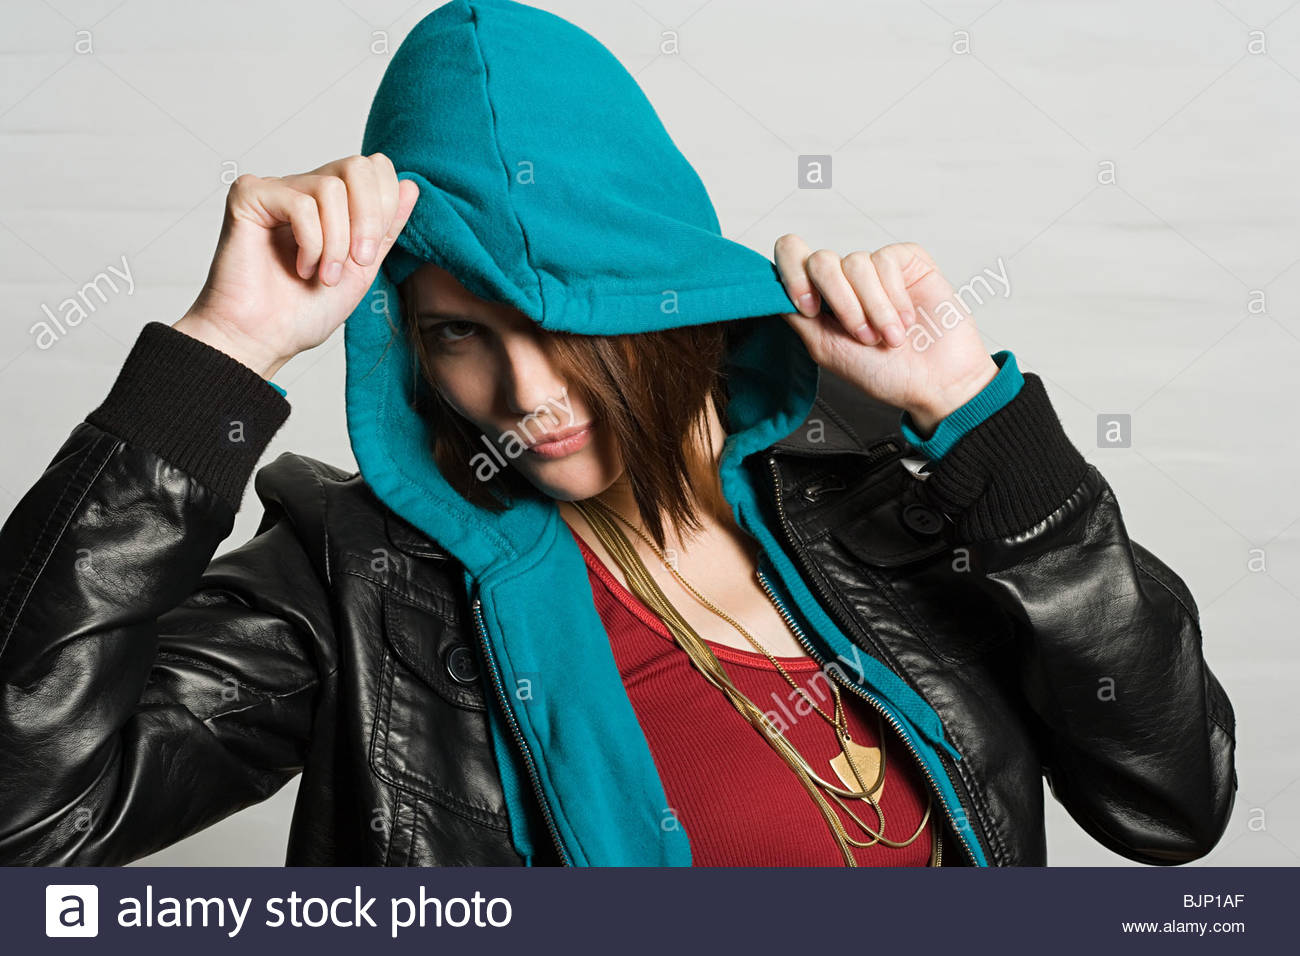 Young woman in hooded top - Stock Image